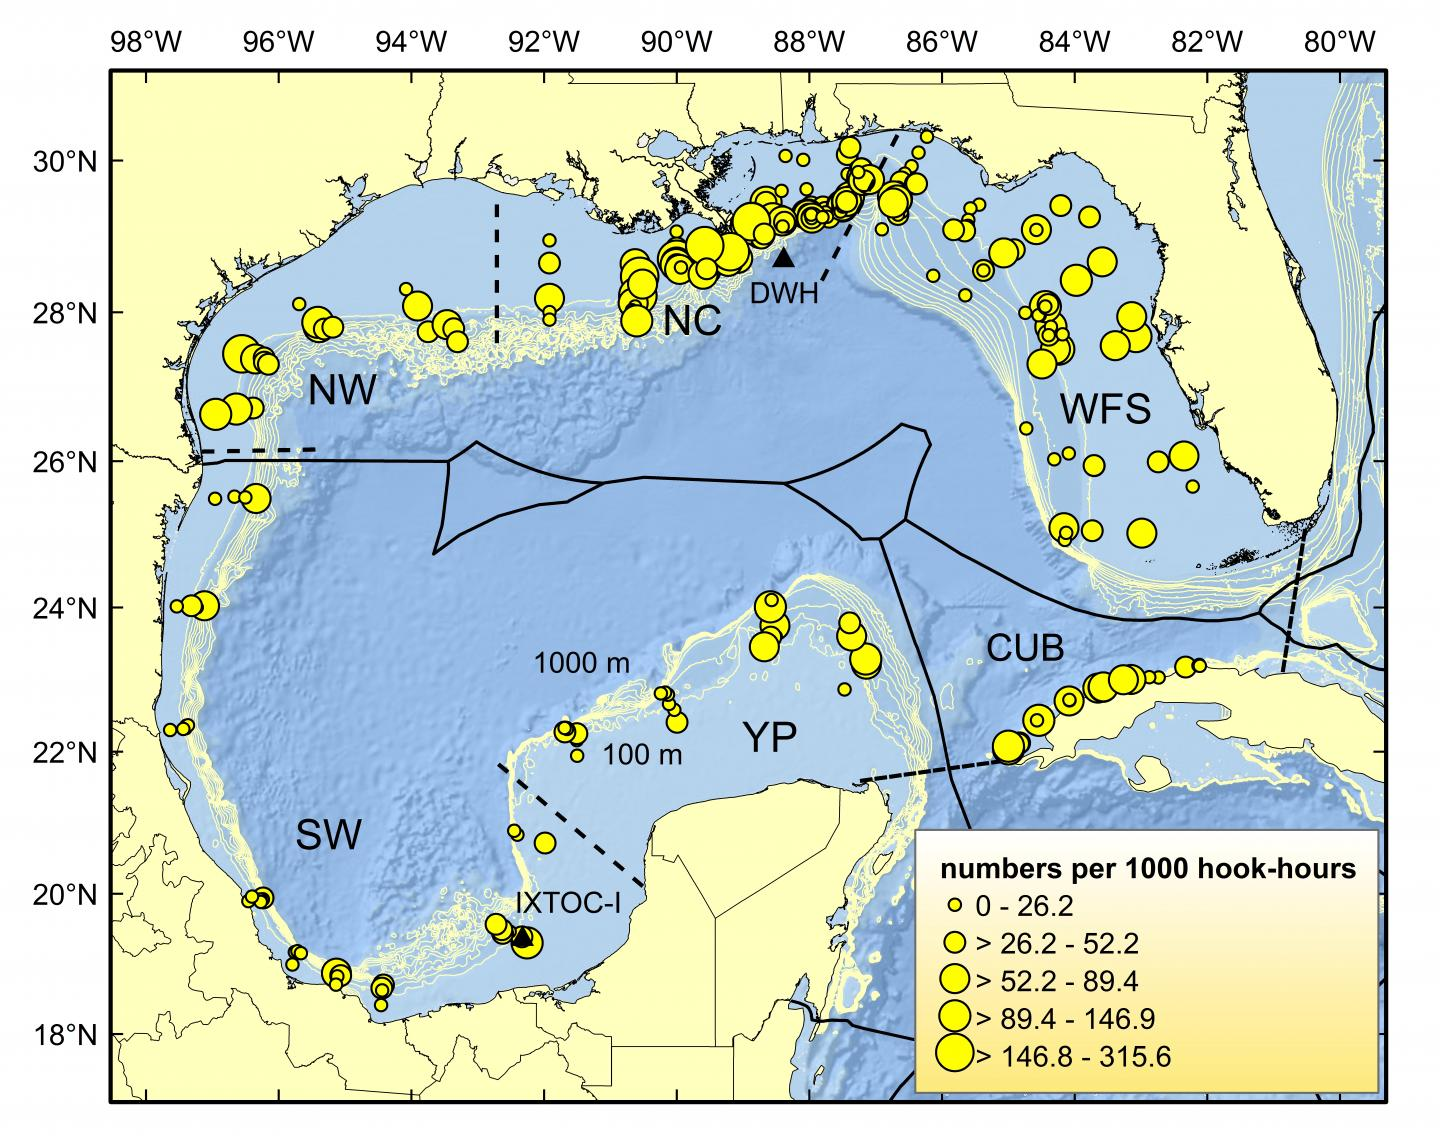 essing Marine Life, 8 Yrs. After Mive Gulf-of-Mexico Oil Spill ... on zone map washington, zone map pacific, zone 9 map, zone map arkansas, ecosystems with map of mexico, zone map usa, zone map new england, zone map florida, zone map canada, zone map north america, zone map wyoming,